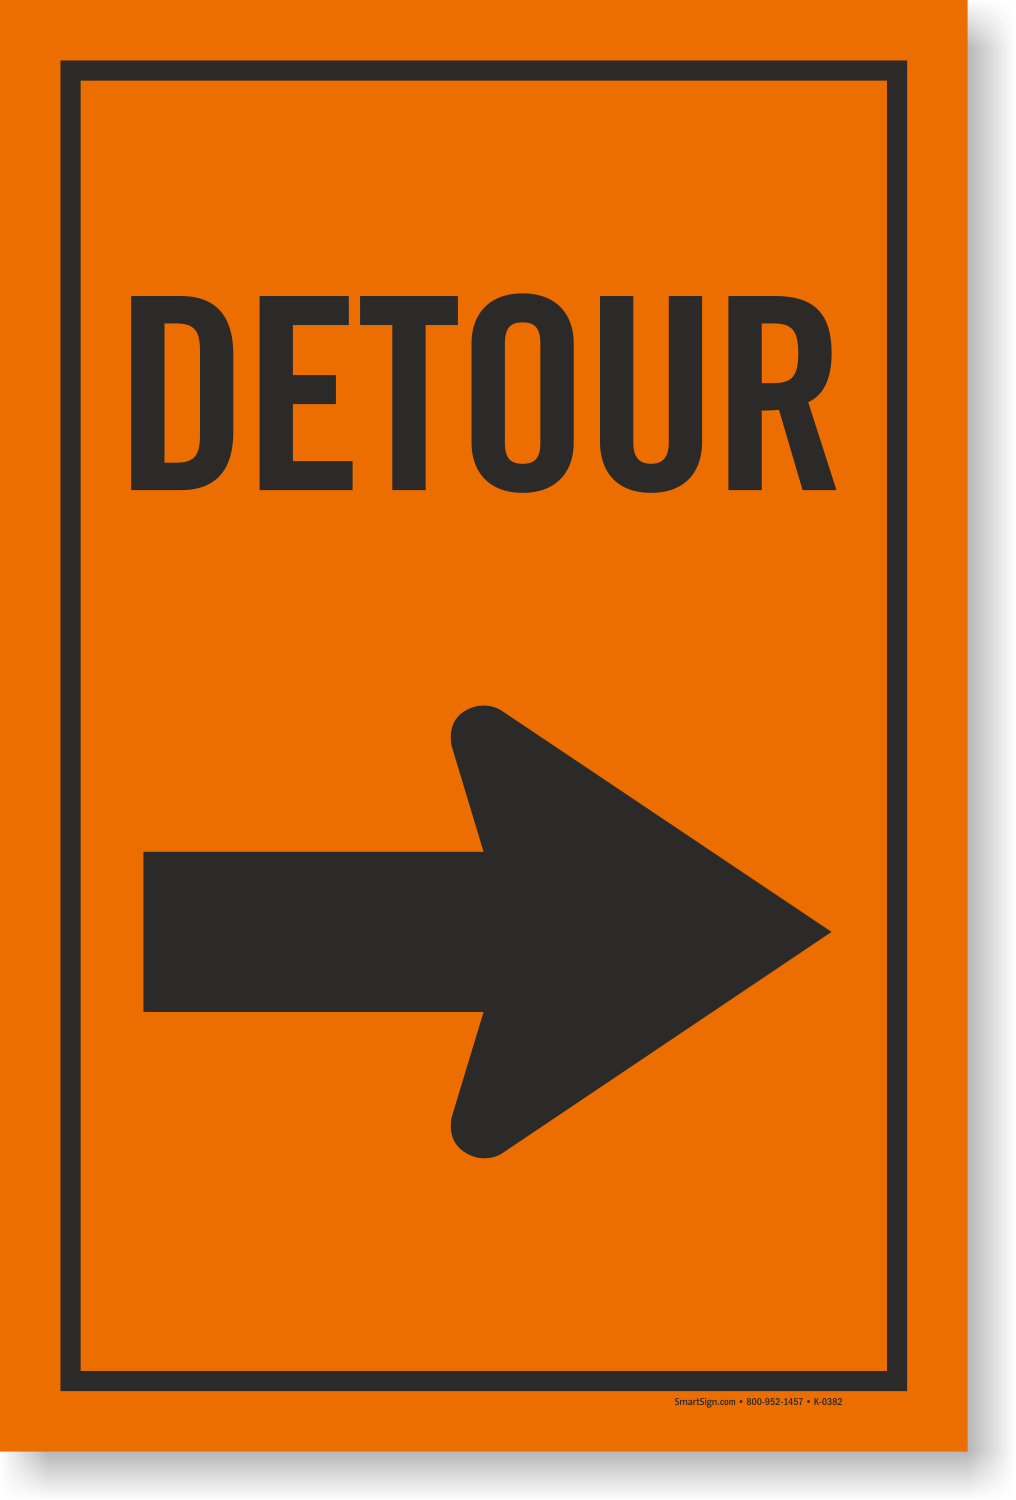 Detour Sign Right Arrow Symbol Signs Low Prices Sku